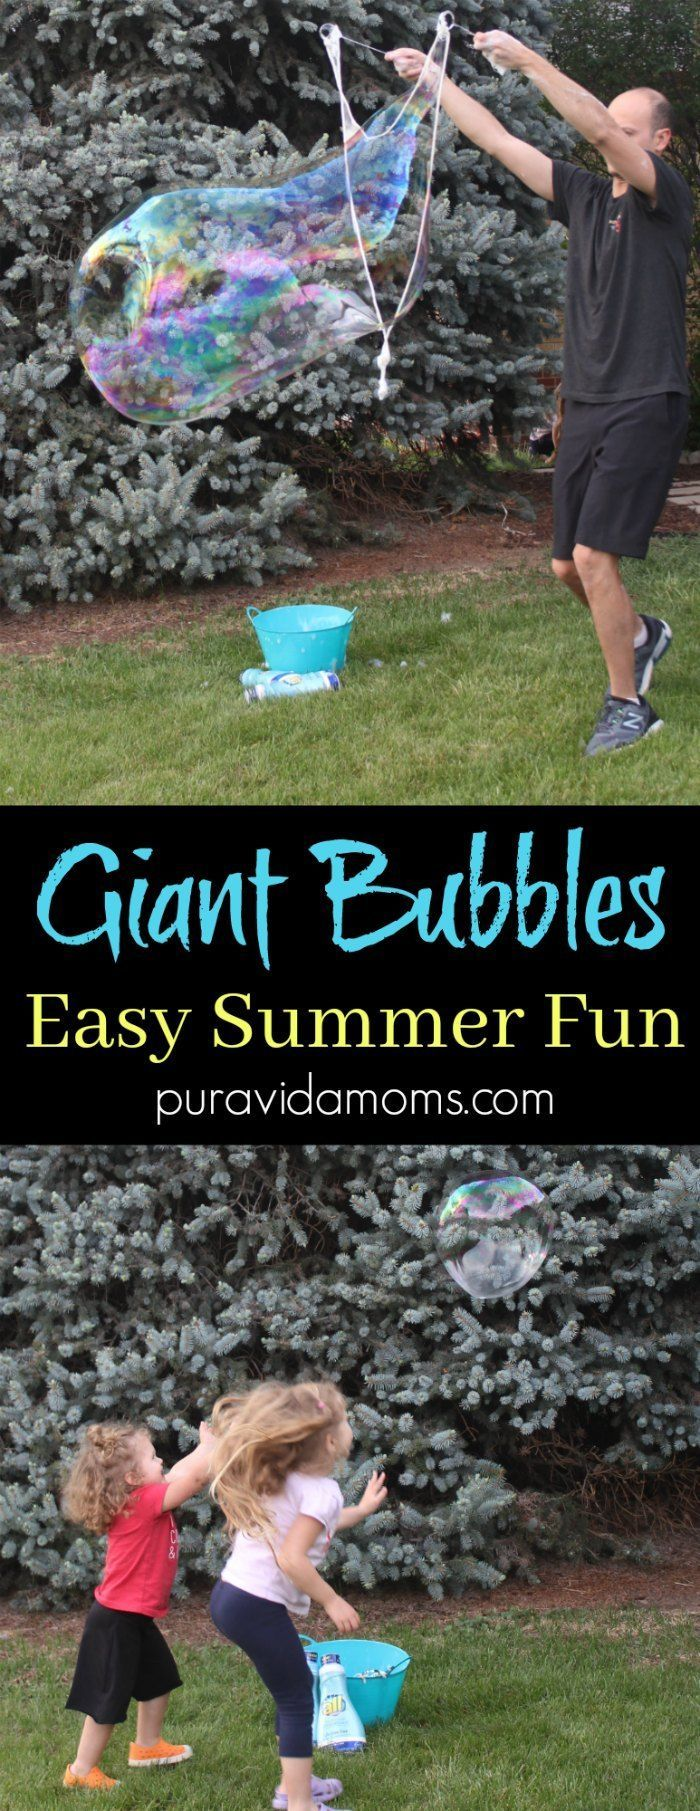 Easy instructions for how to make giant bubbles that the whole family will enjoy! Super summer fun for everyone!